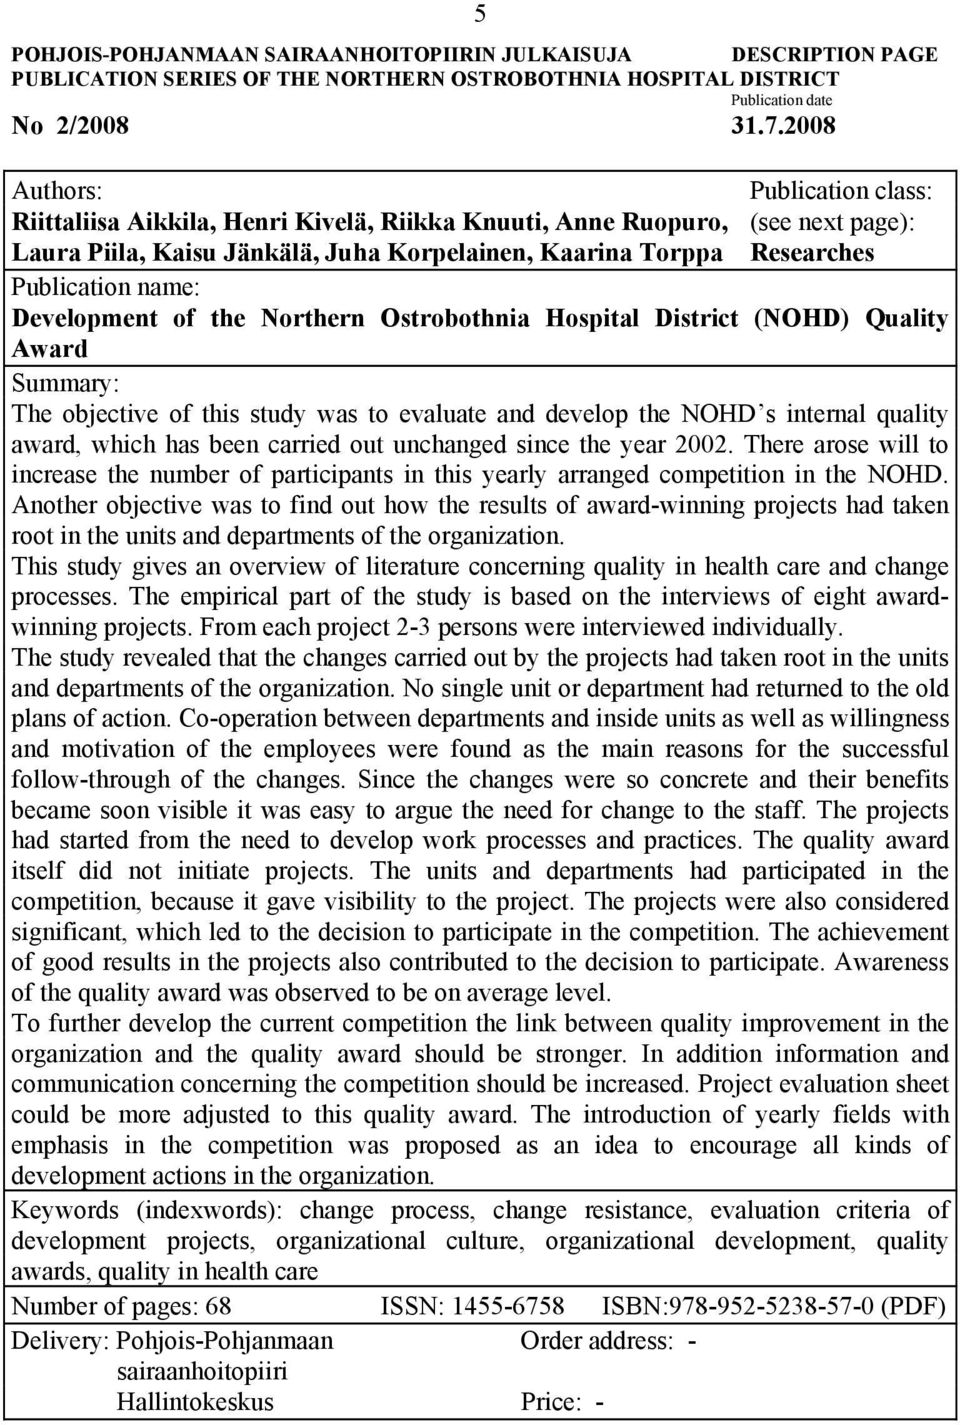 name: Development of the Northern Ostrobothnia Hospital District (NOHD) Quality Award Summary: The objective of this study was to evaluate and develop the NOHD s internal quality award, which has